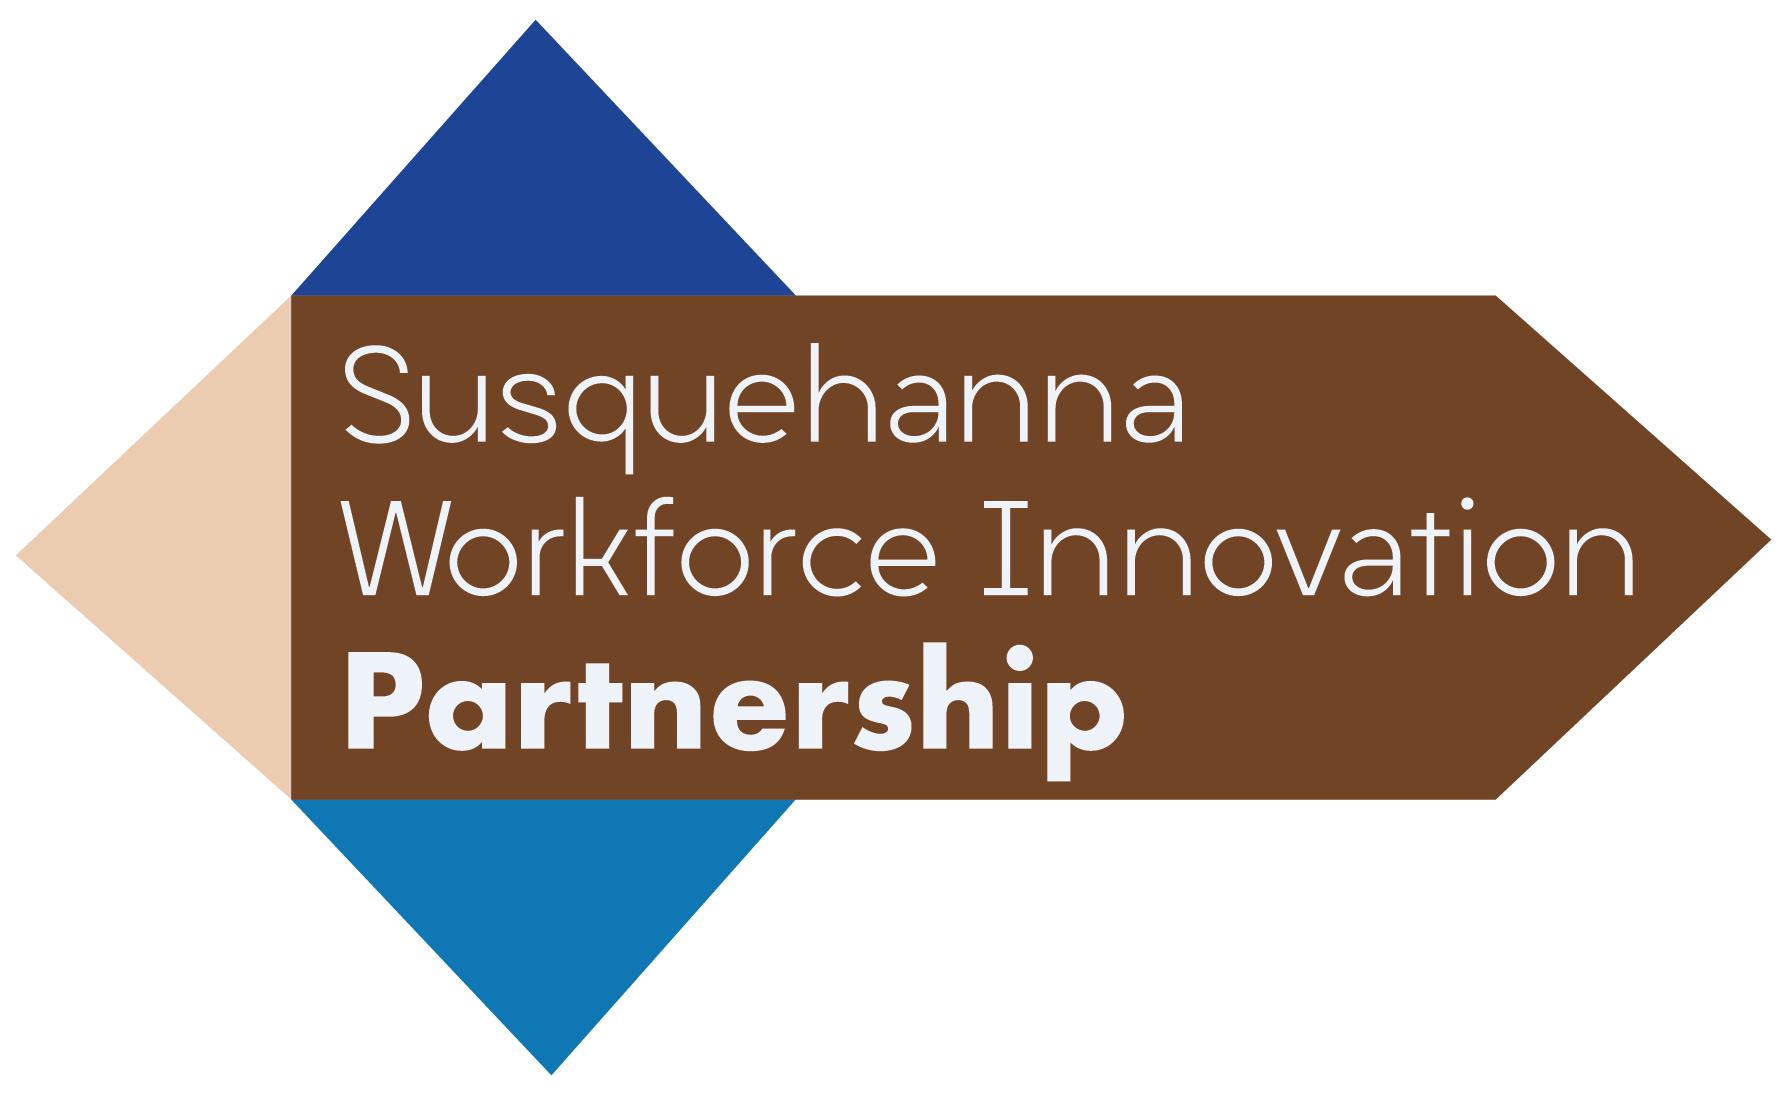 Susquehanna Workforce Innovation Partnership